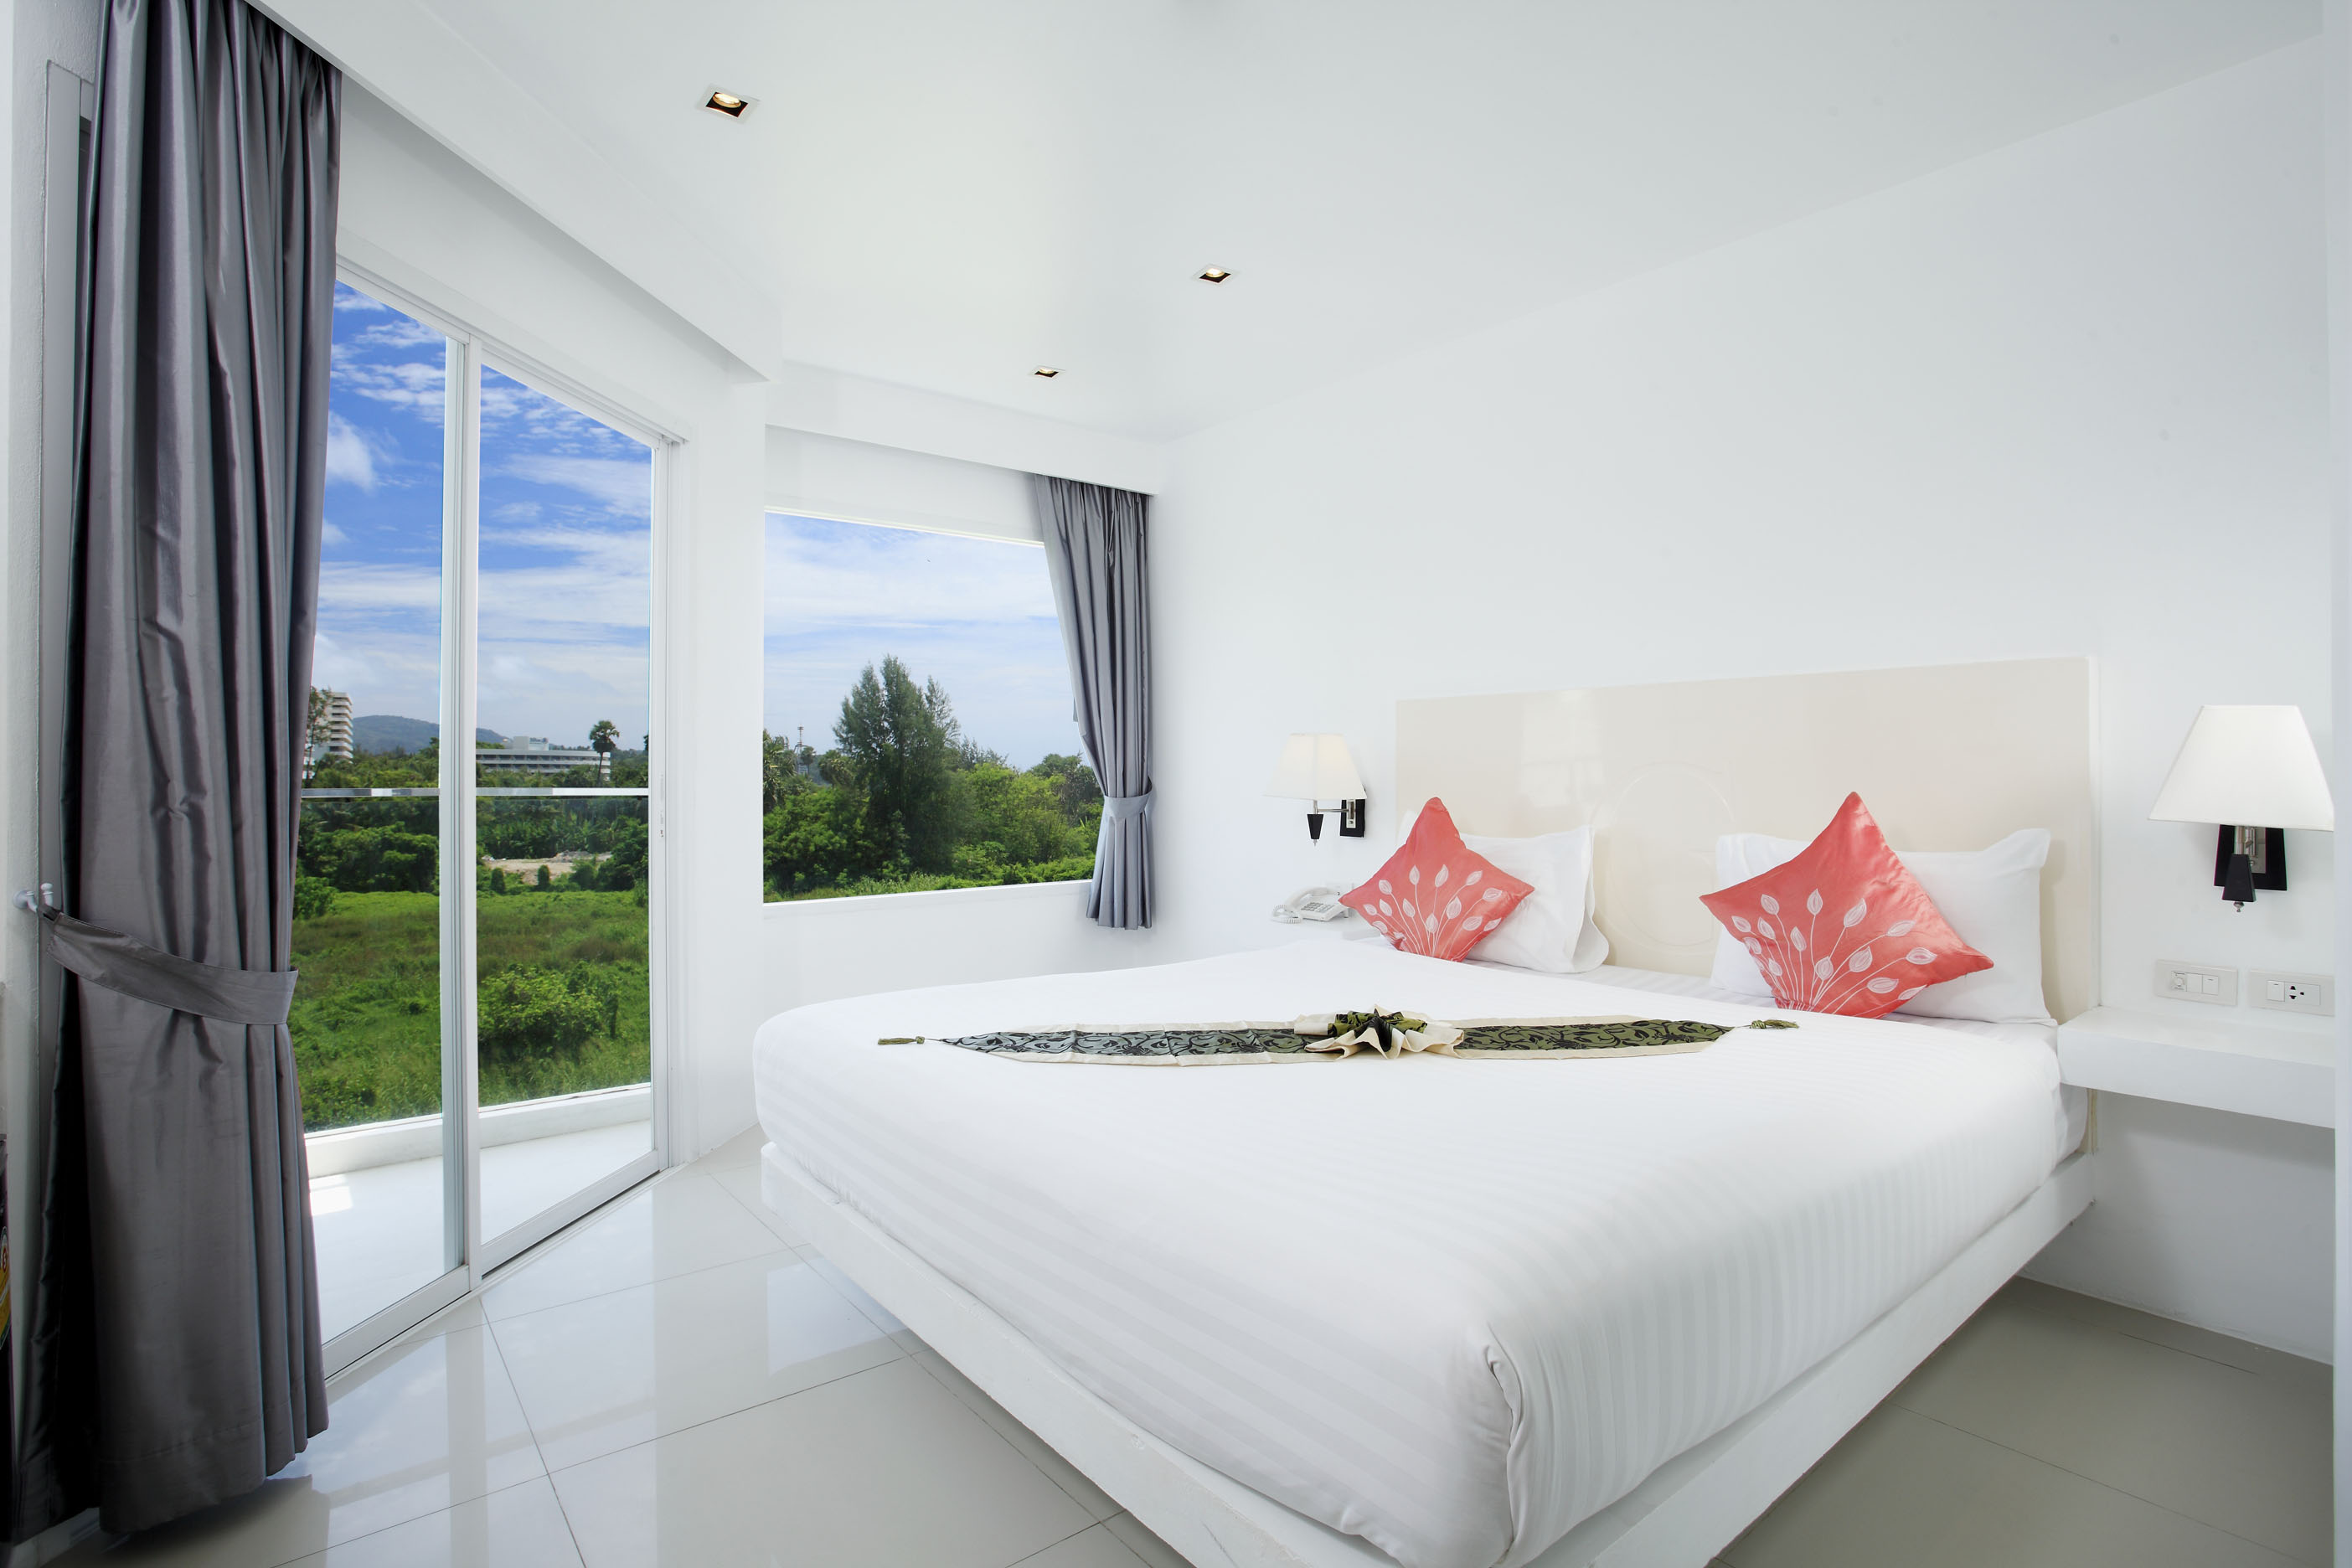 Grand Sunset Hotel, An Affordable stay right in front of Karon Beach